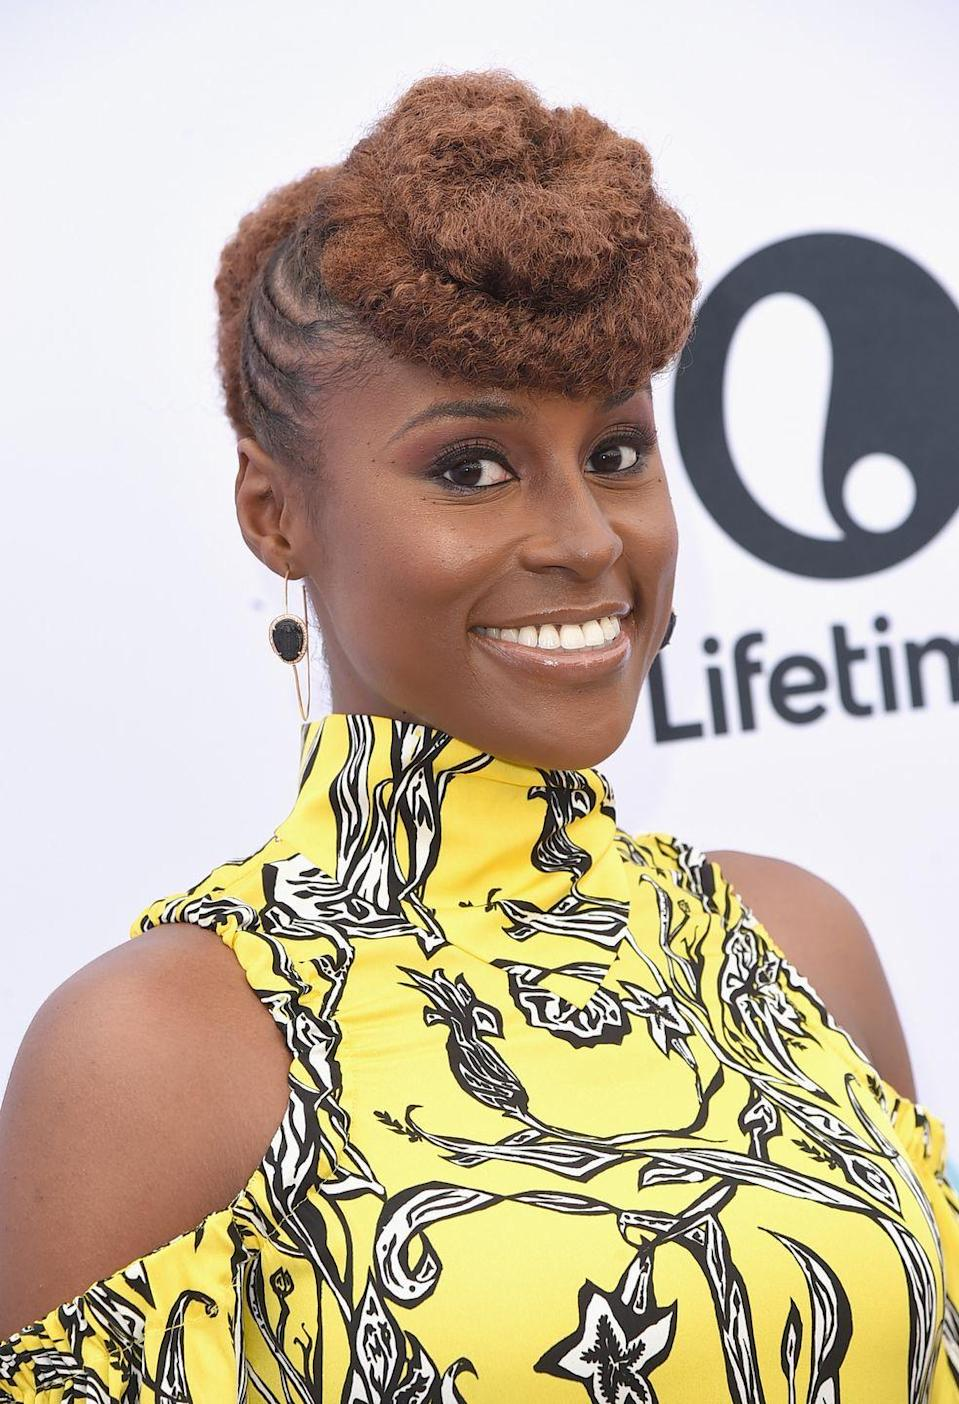 <p>Short hair is definitely not limiting. Case in point: Adding a weave to the front and braids to the side for an elegant bouffant style like <strong>Issa Rae</strong>'s.</p>